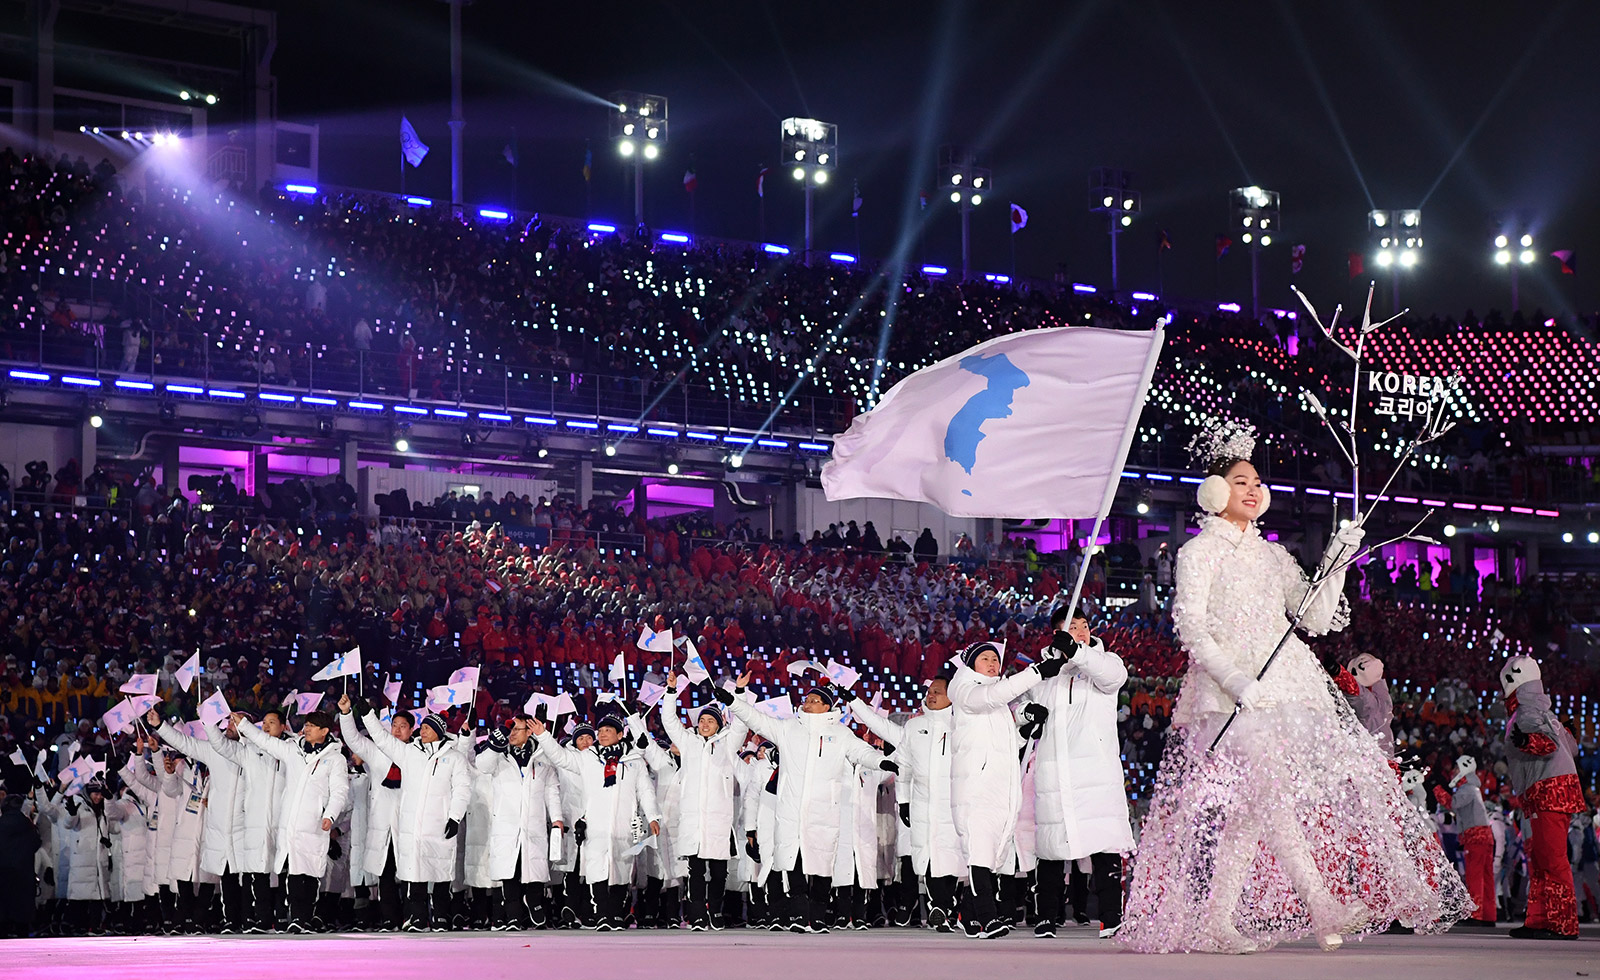 The best photos of the 2018 Winter Olympics